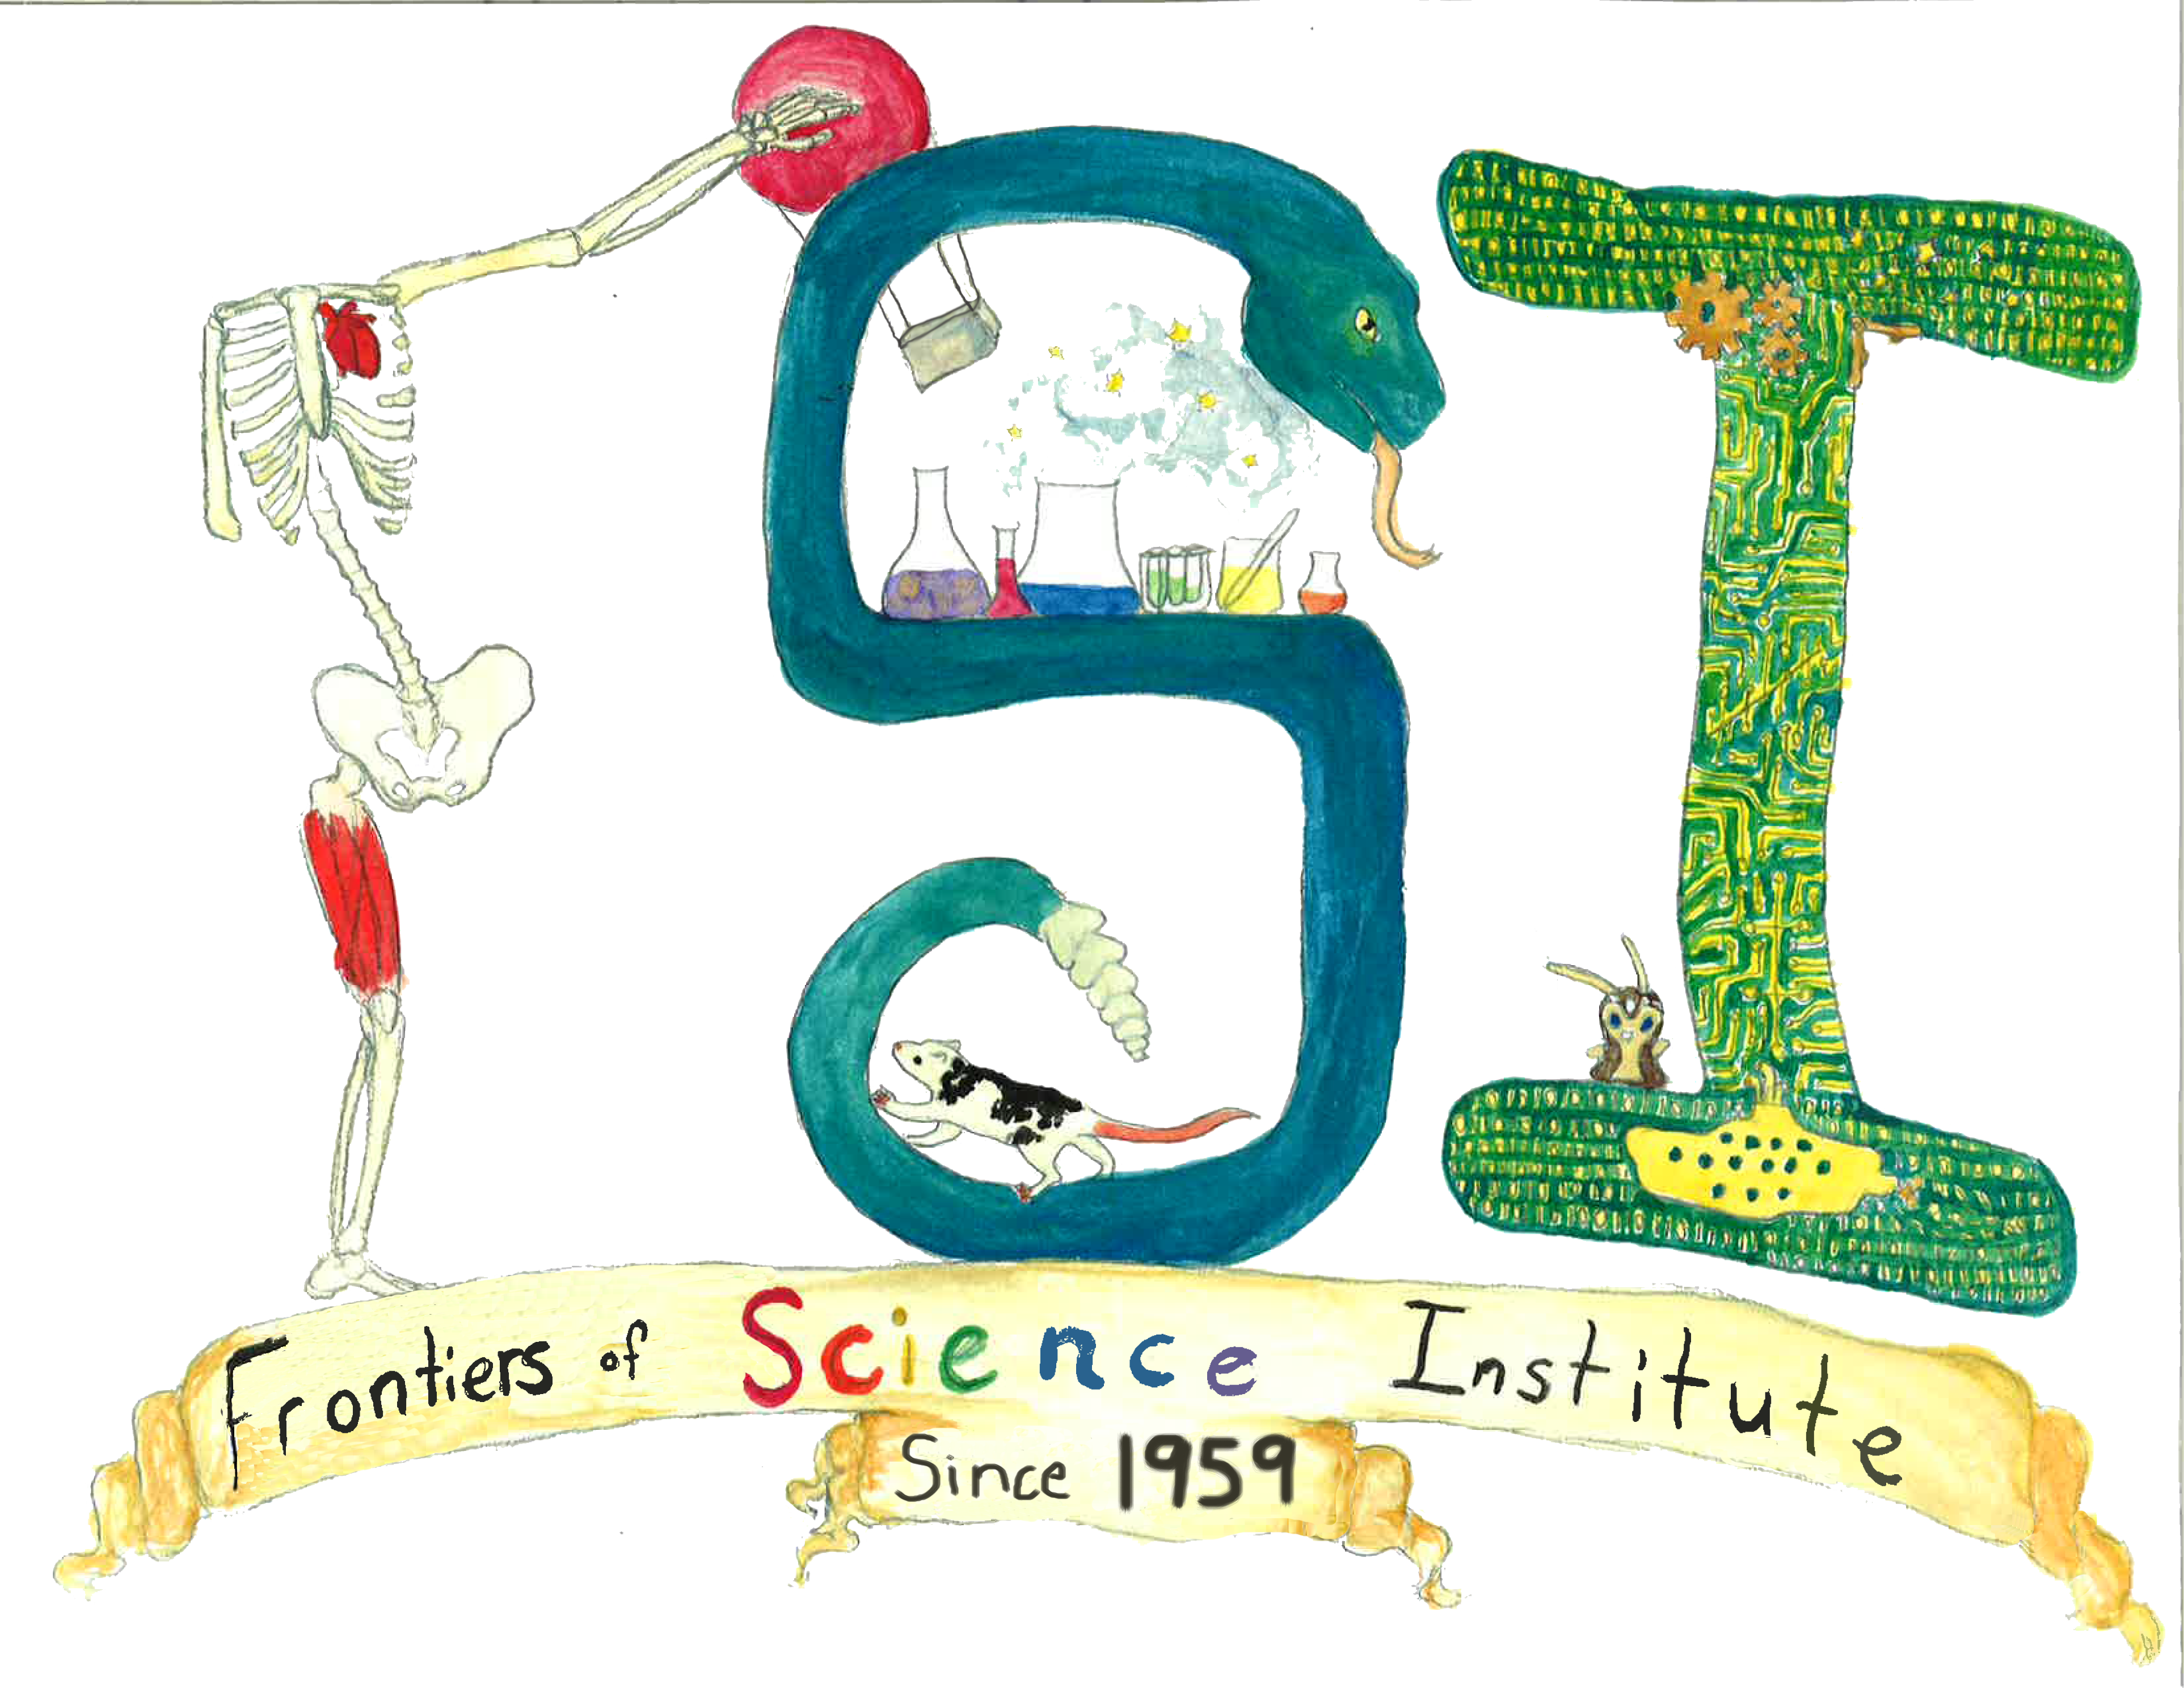 Summer Program Frontiers of Science Institute (FSI) - UNCO